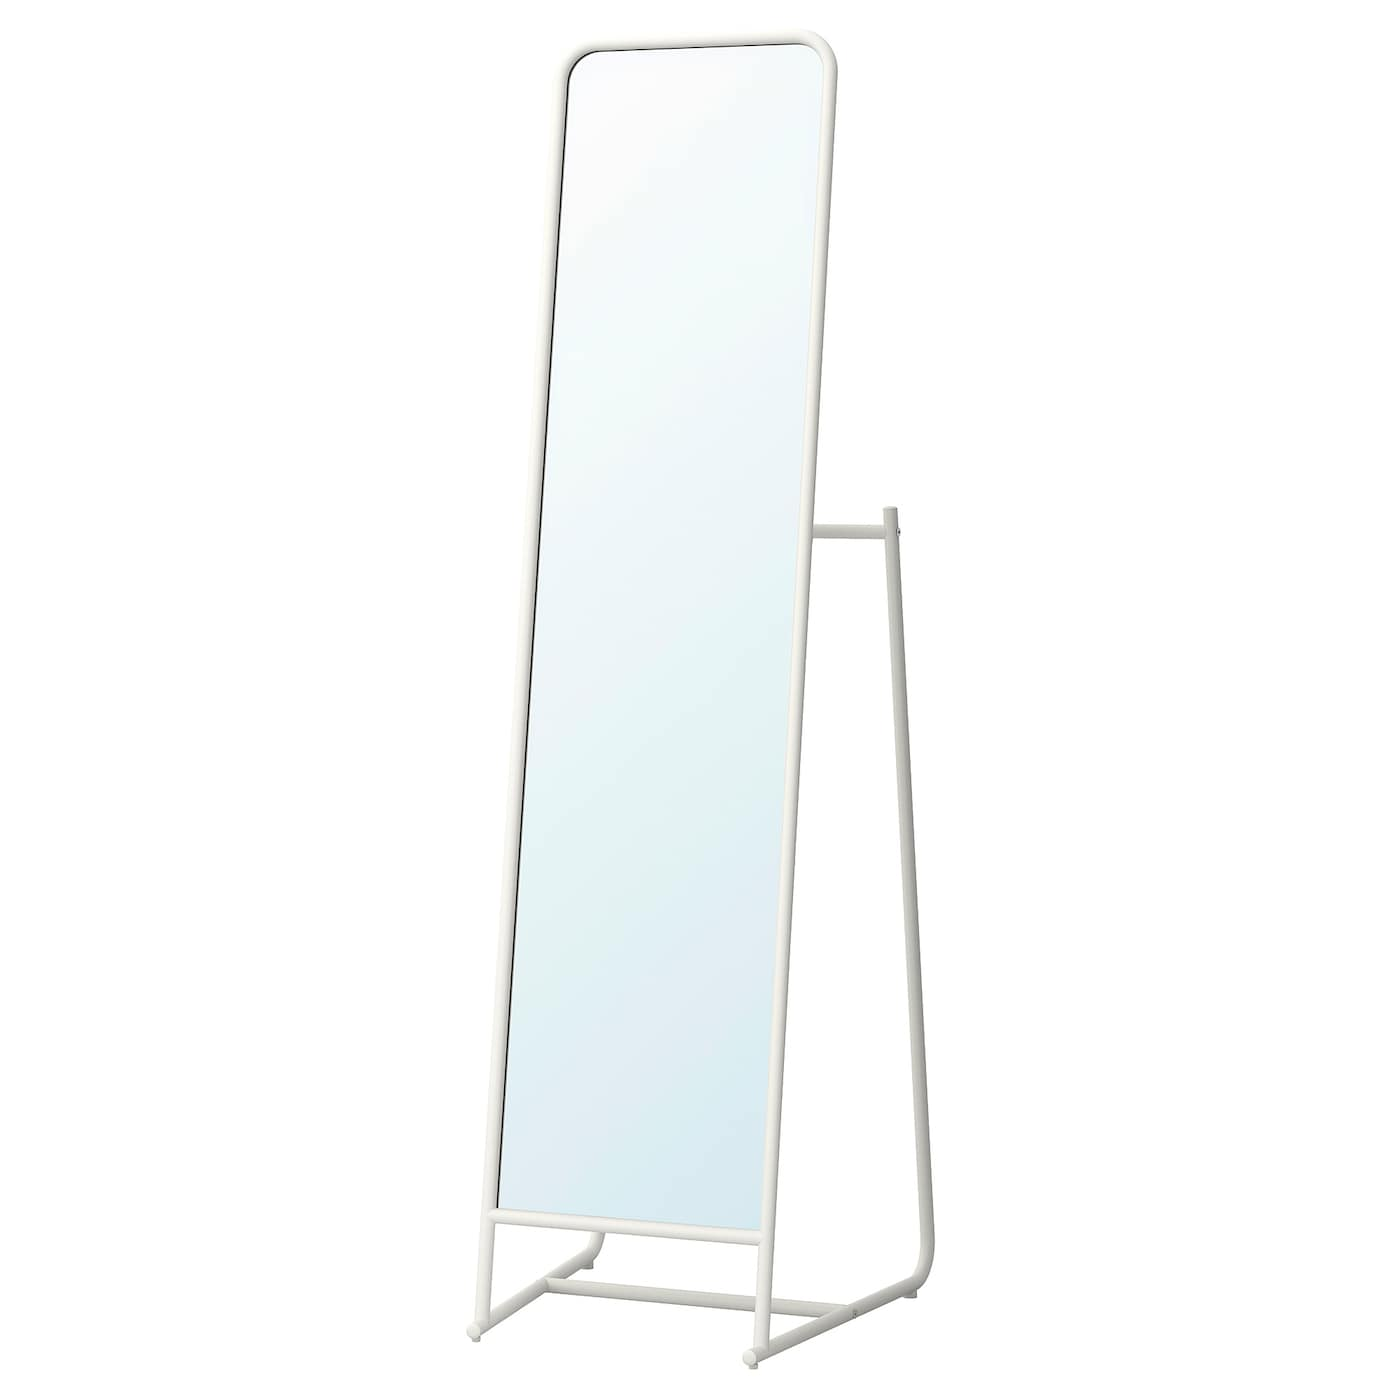 IKEA KNAPPER standing mirror Provided with safety film - reduces damage if the glass is broken.